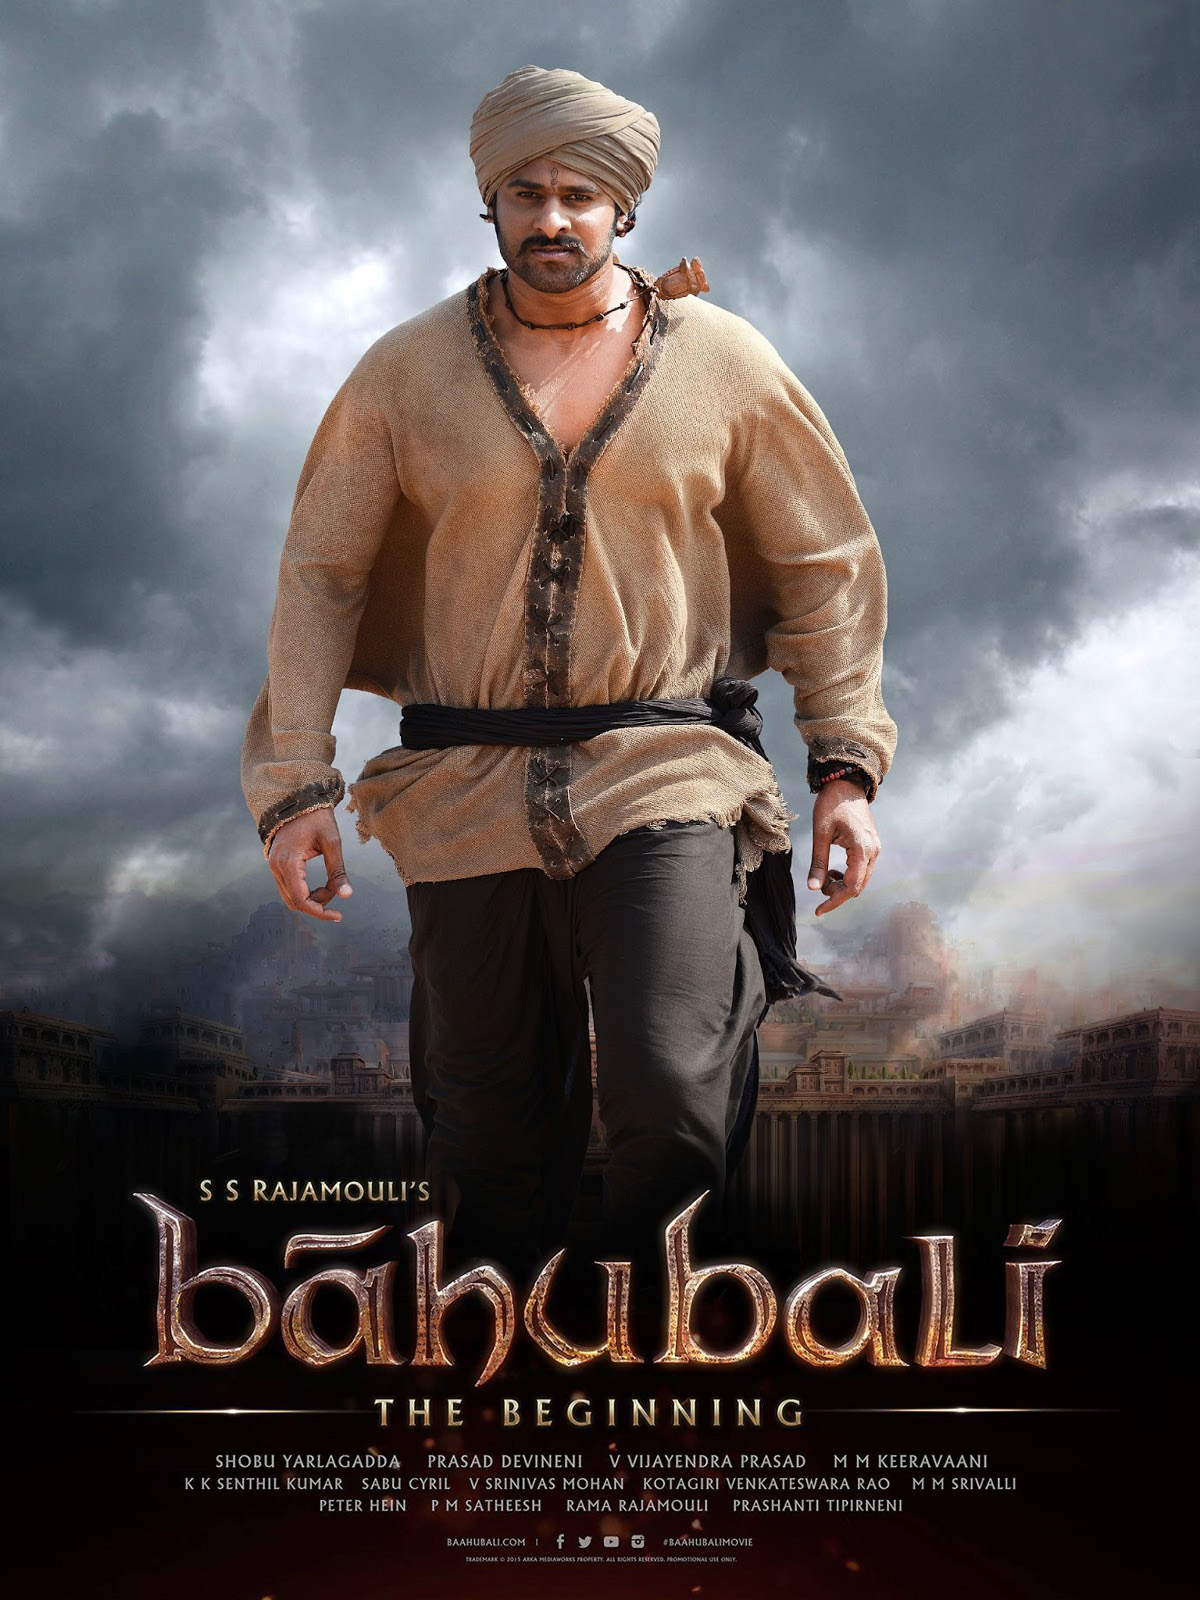 Bahubali 2 release dates - Things You Must Know About Bahubali The Beginning With Pictures As The Release Date Is